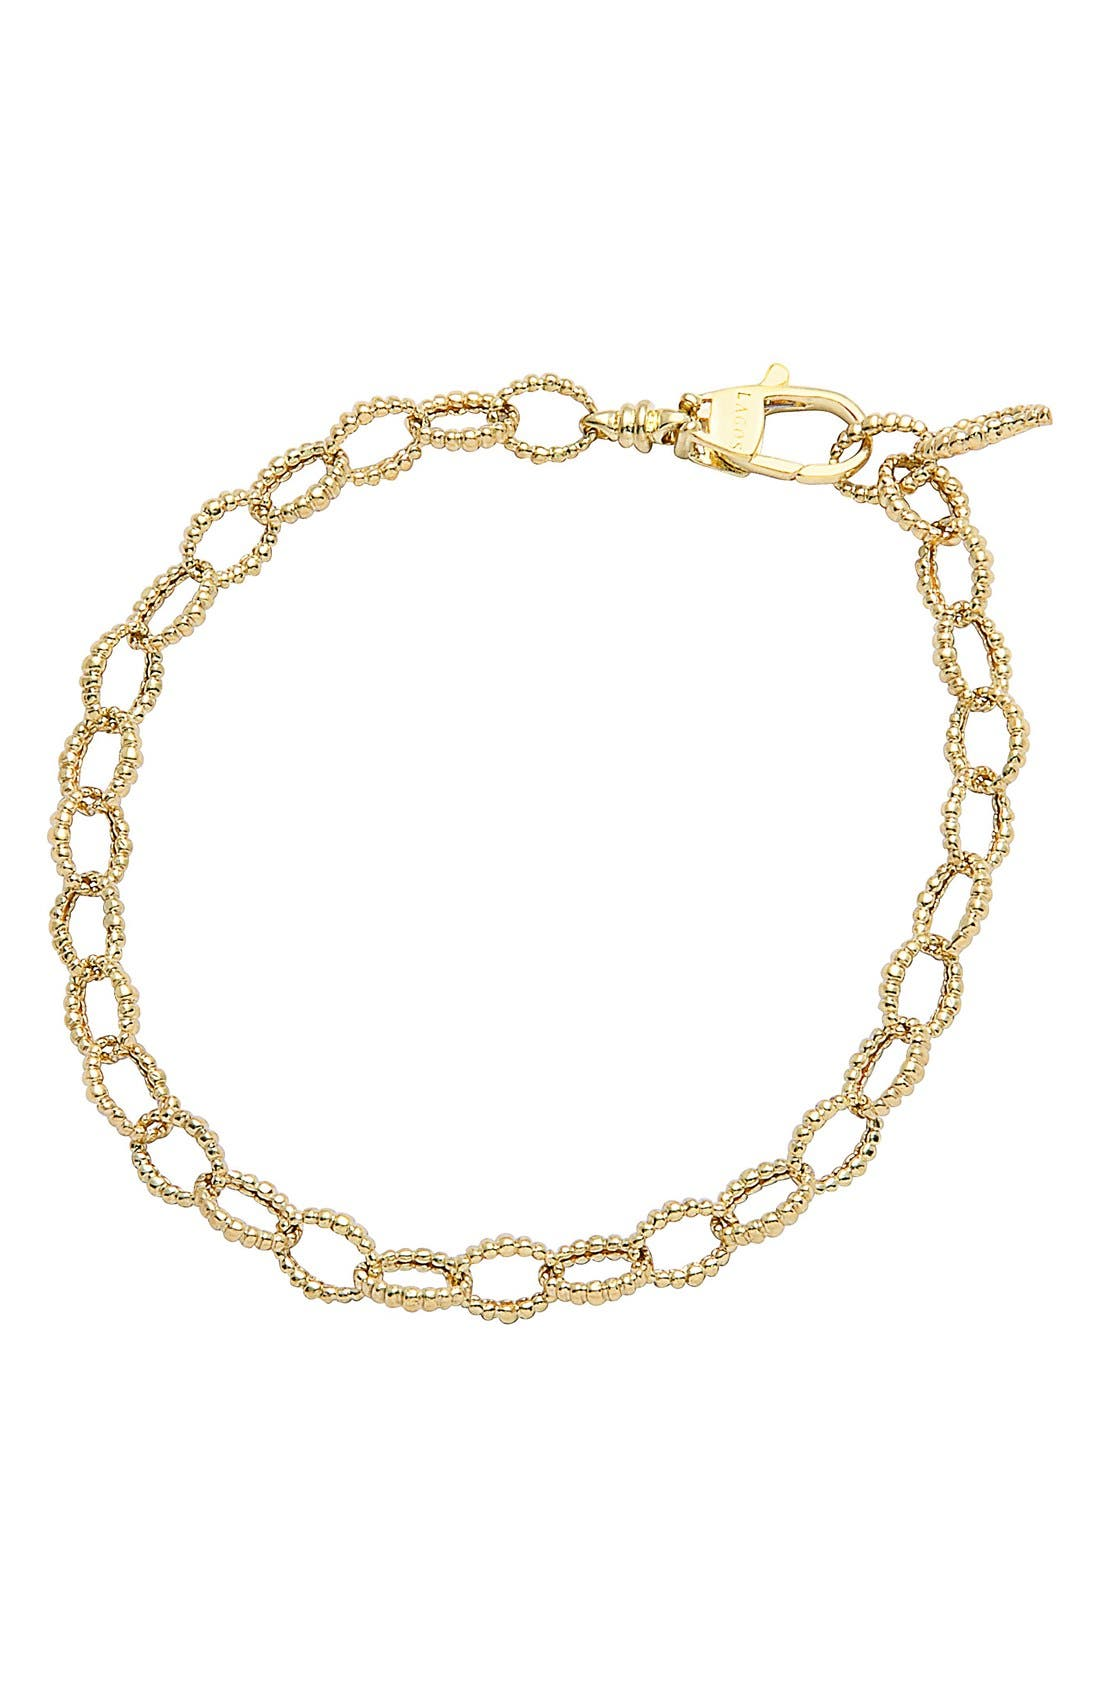 Caviar Link Bracelet,                         Main,                         color, GOLD